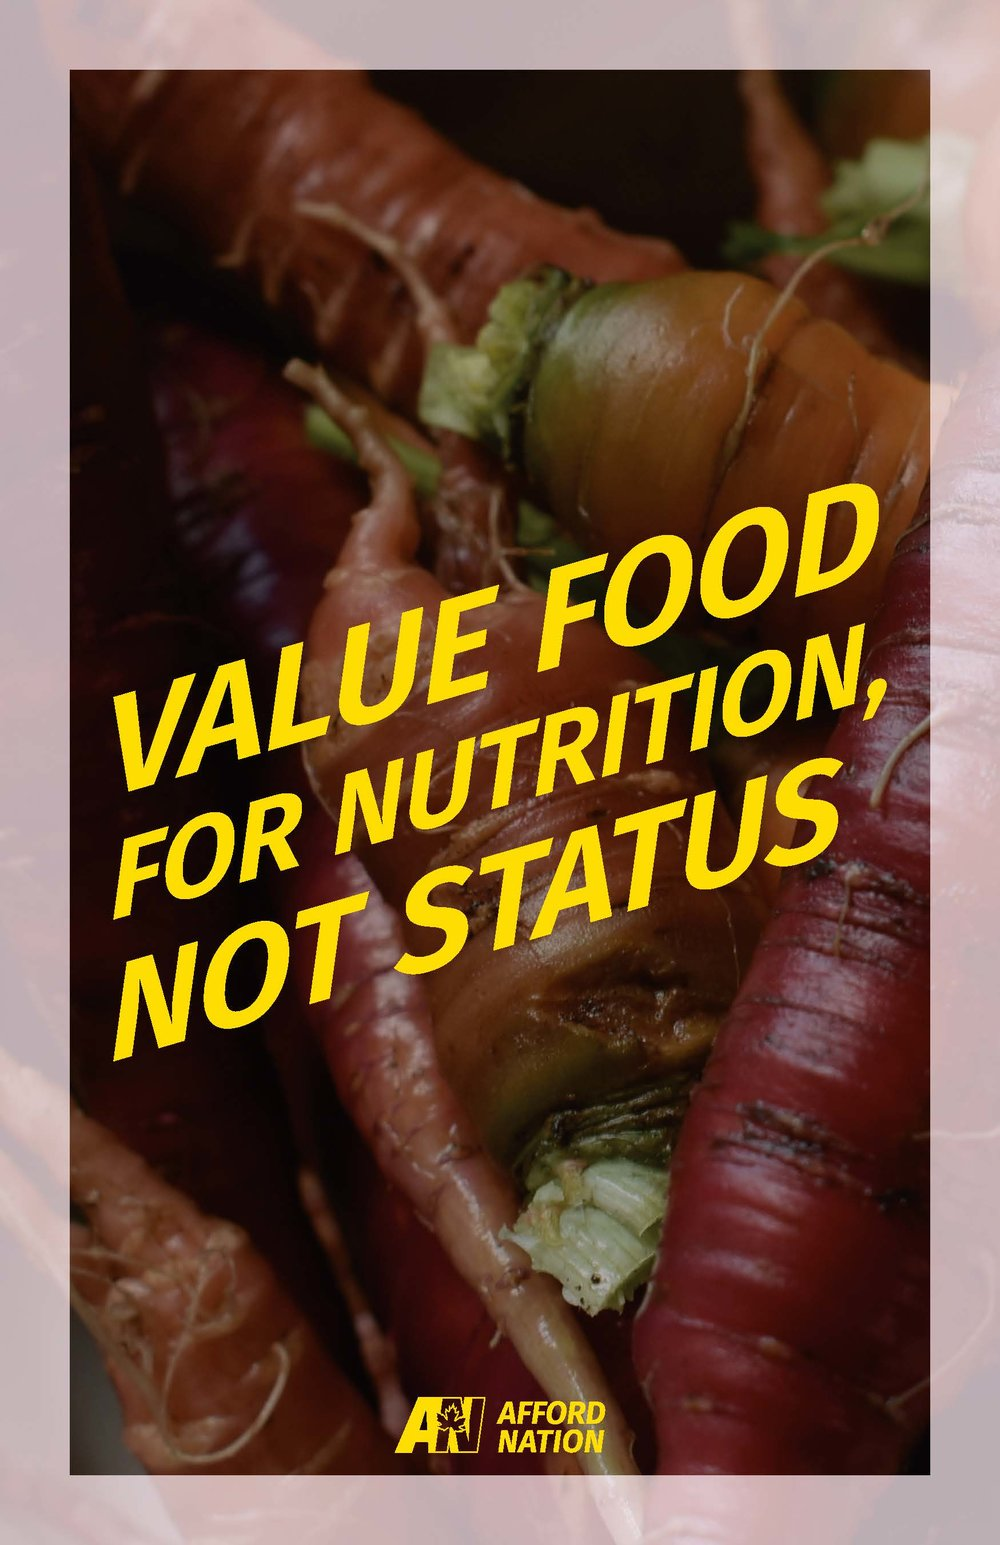 Value food for nutrition, not status